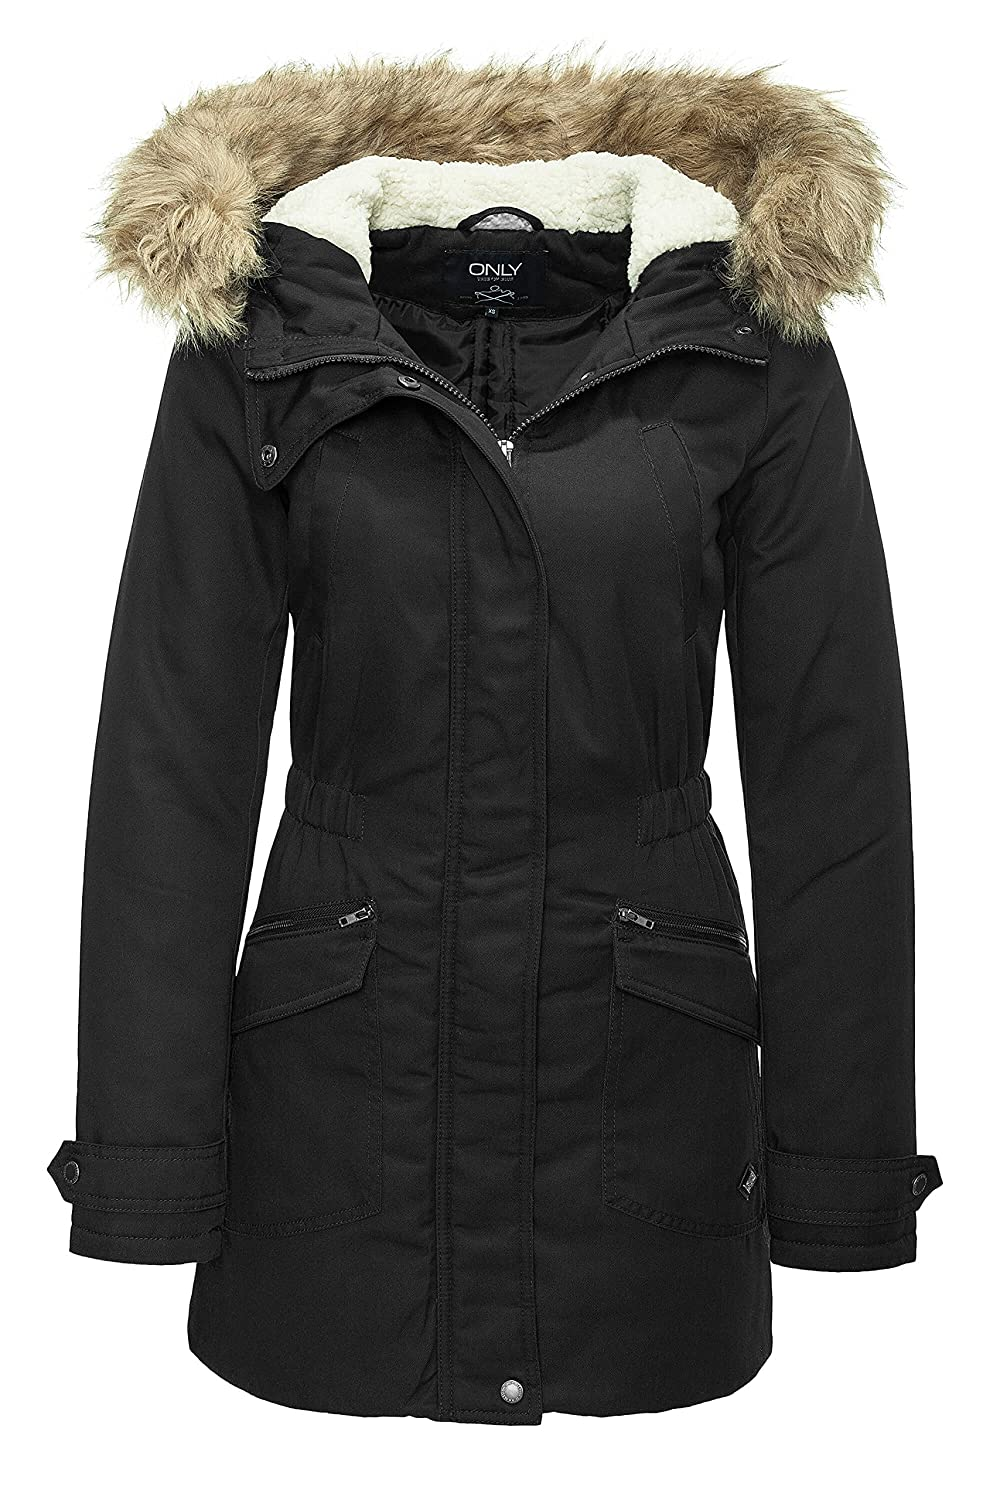 ONLY Damen Winterjacke Parka Kurzmantel